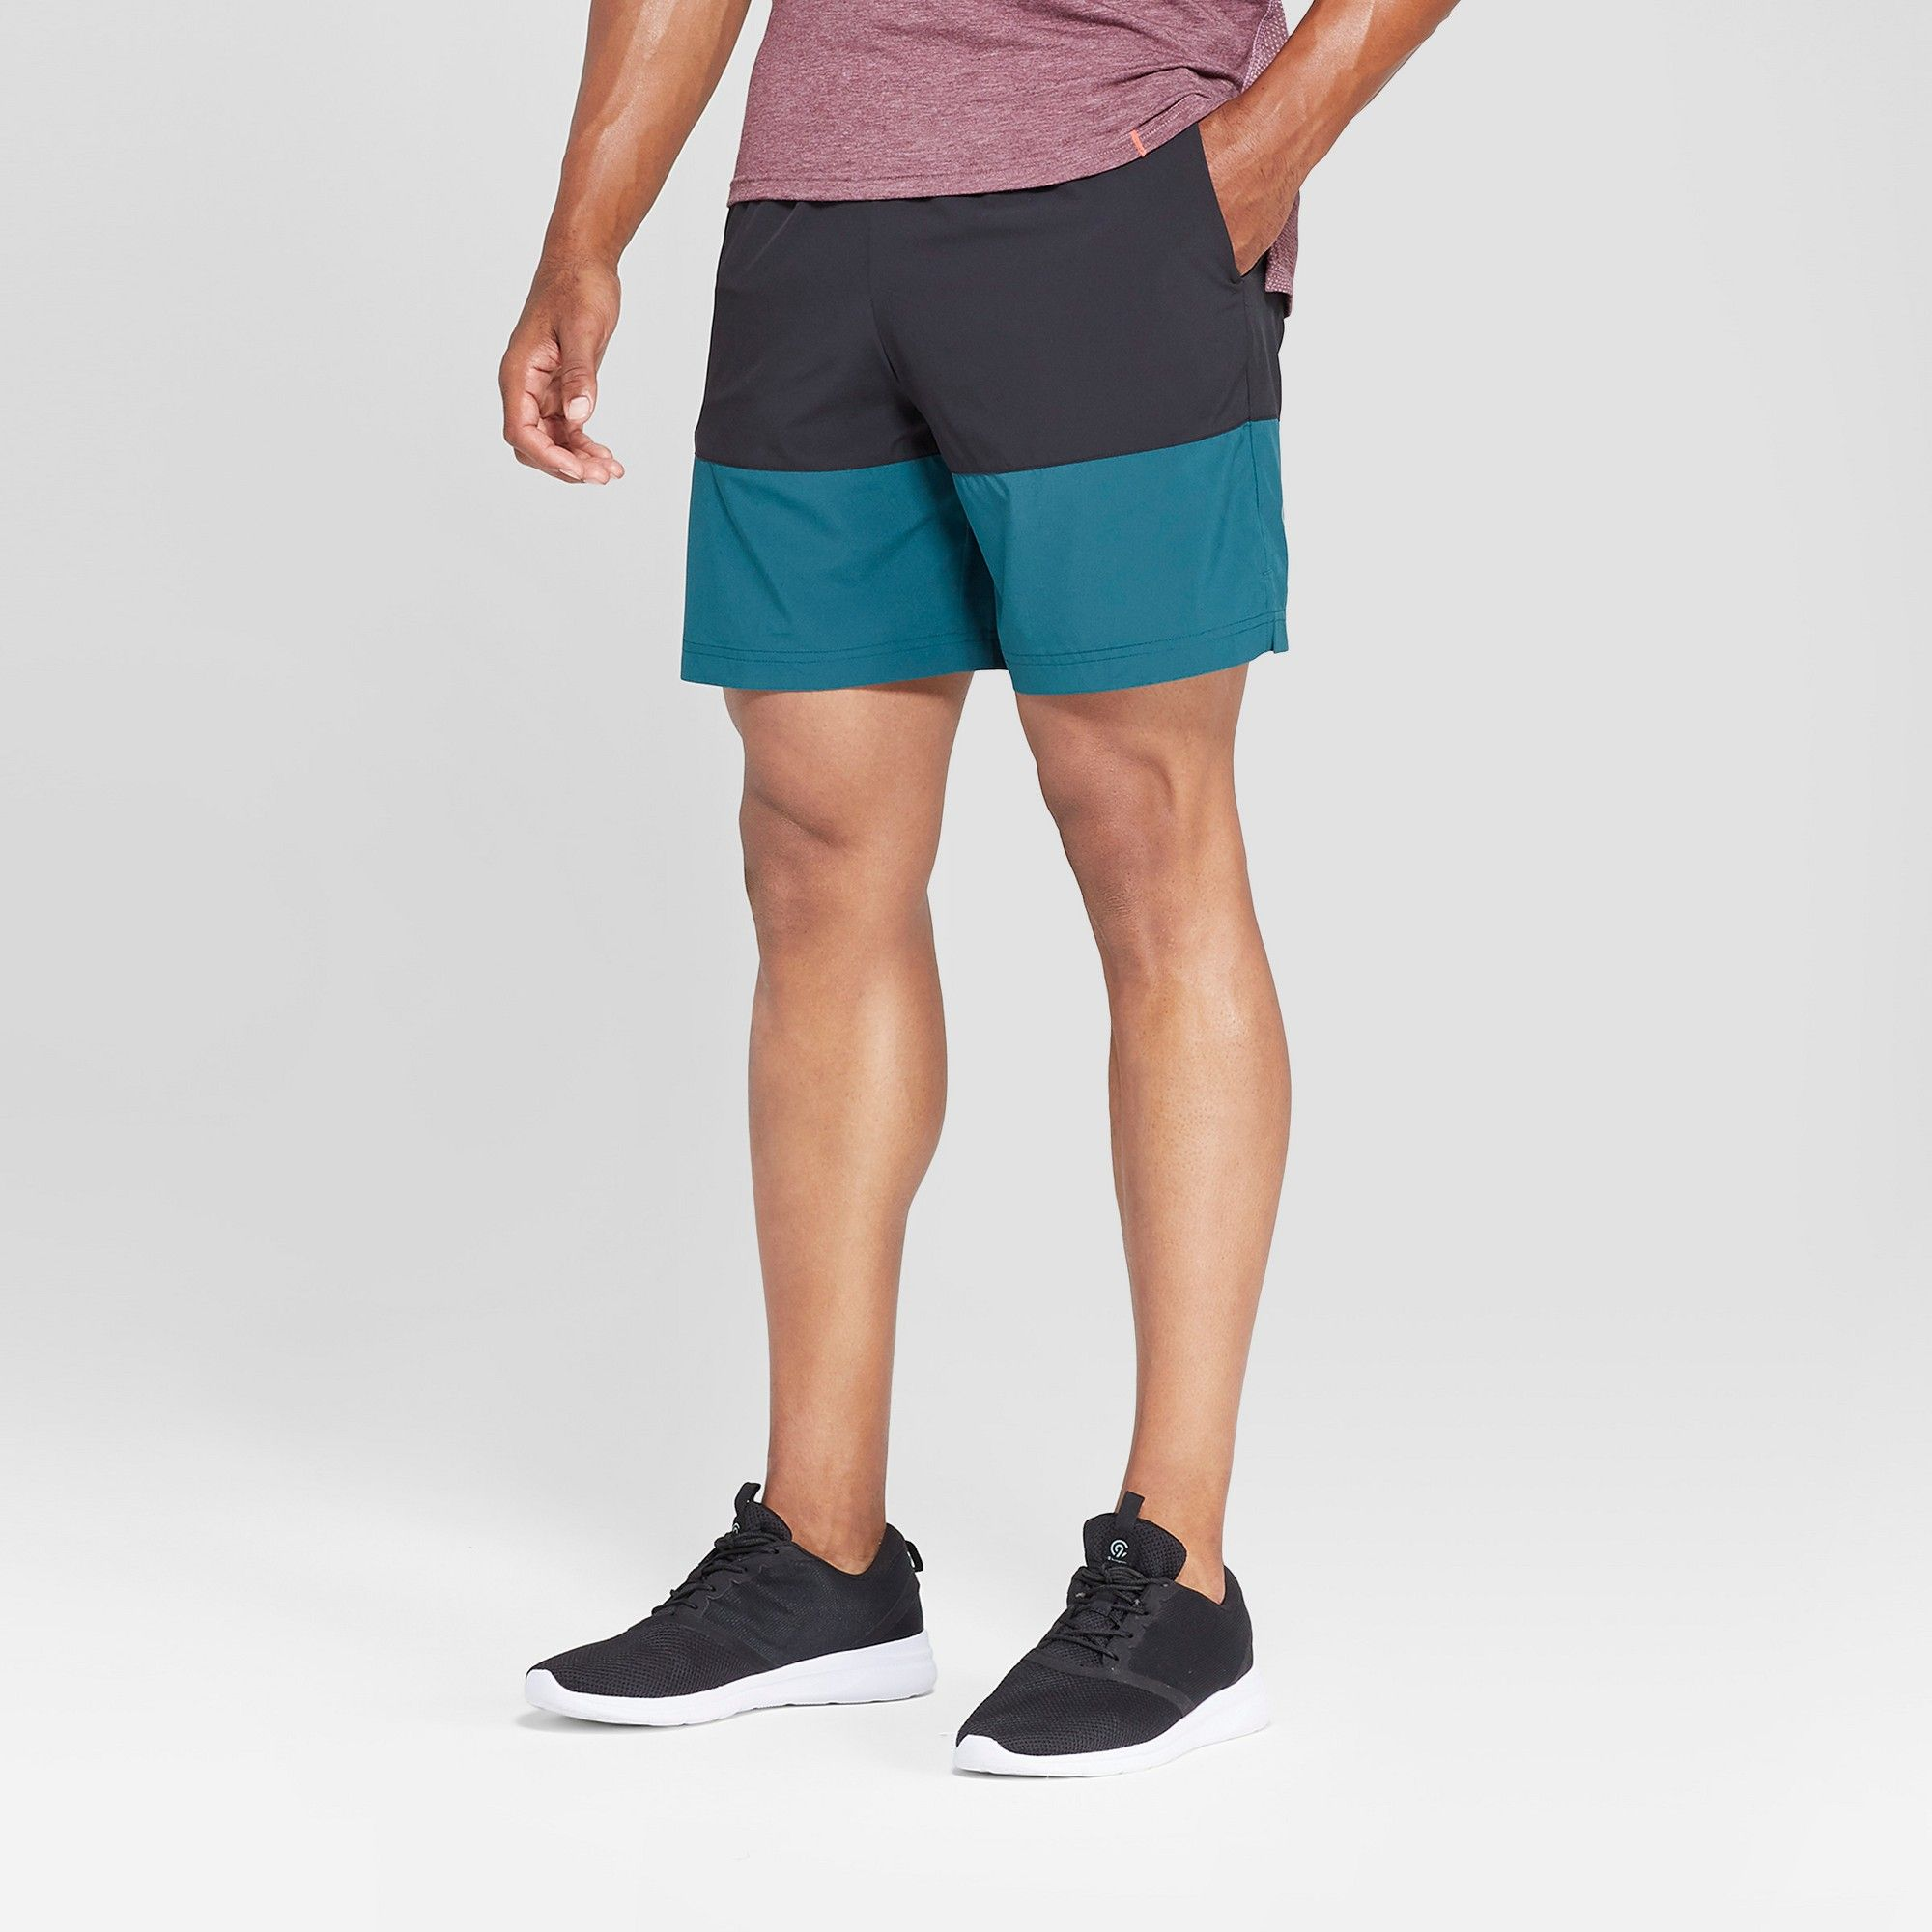 5a1d2edebc1 The Men s 7 Woven Run Short from C9 Champion features a comfortable elastic  drawstring waistband to help stay put during any type of run.